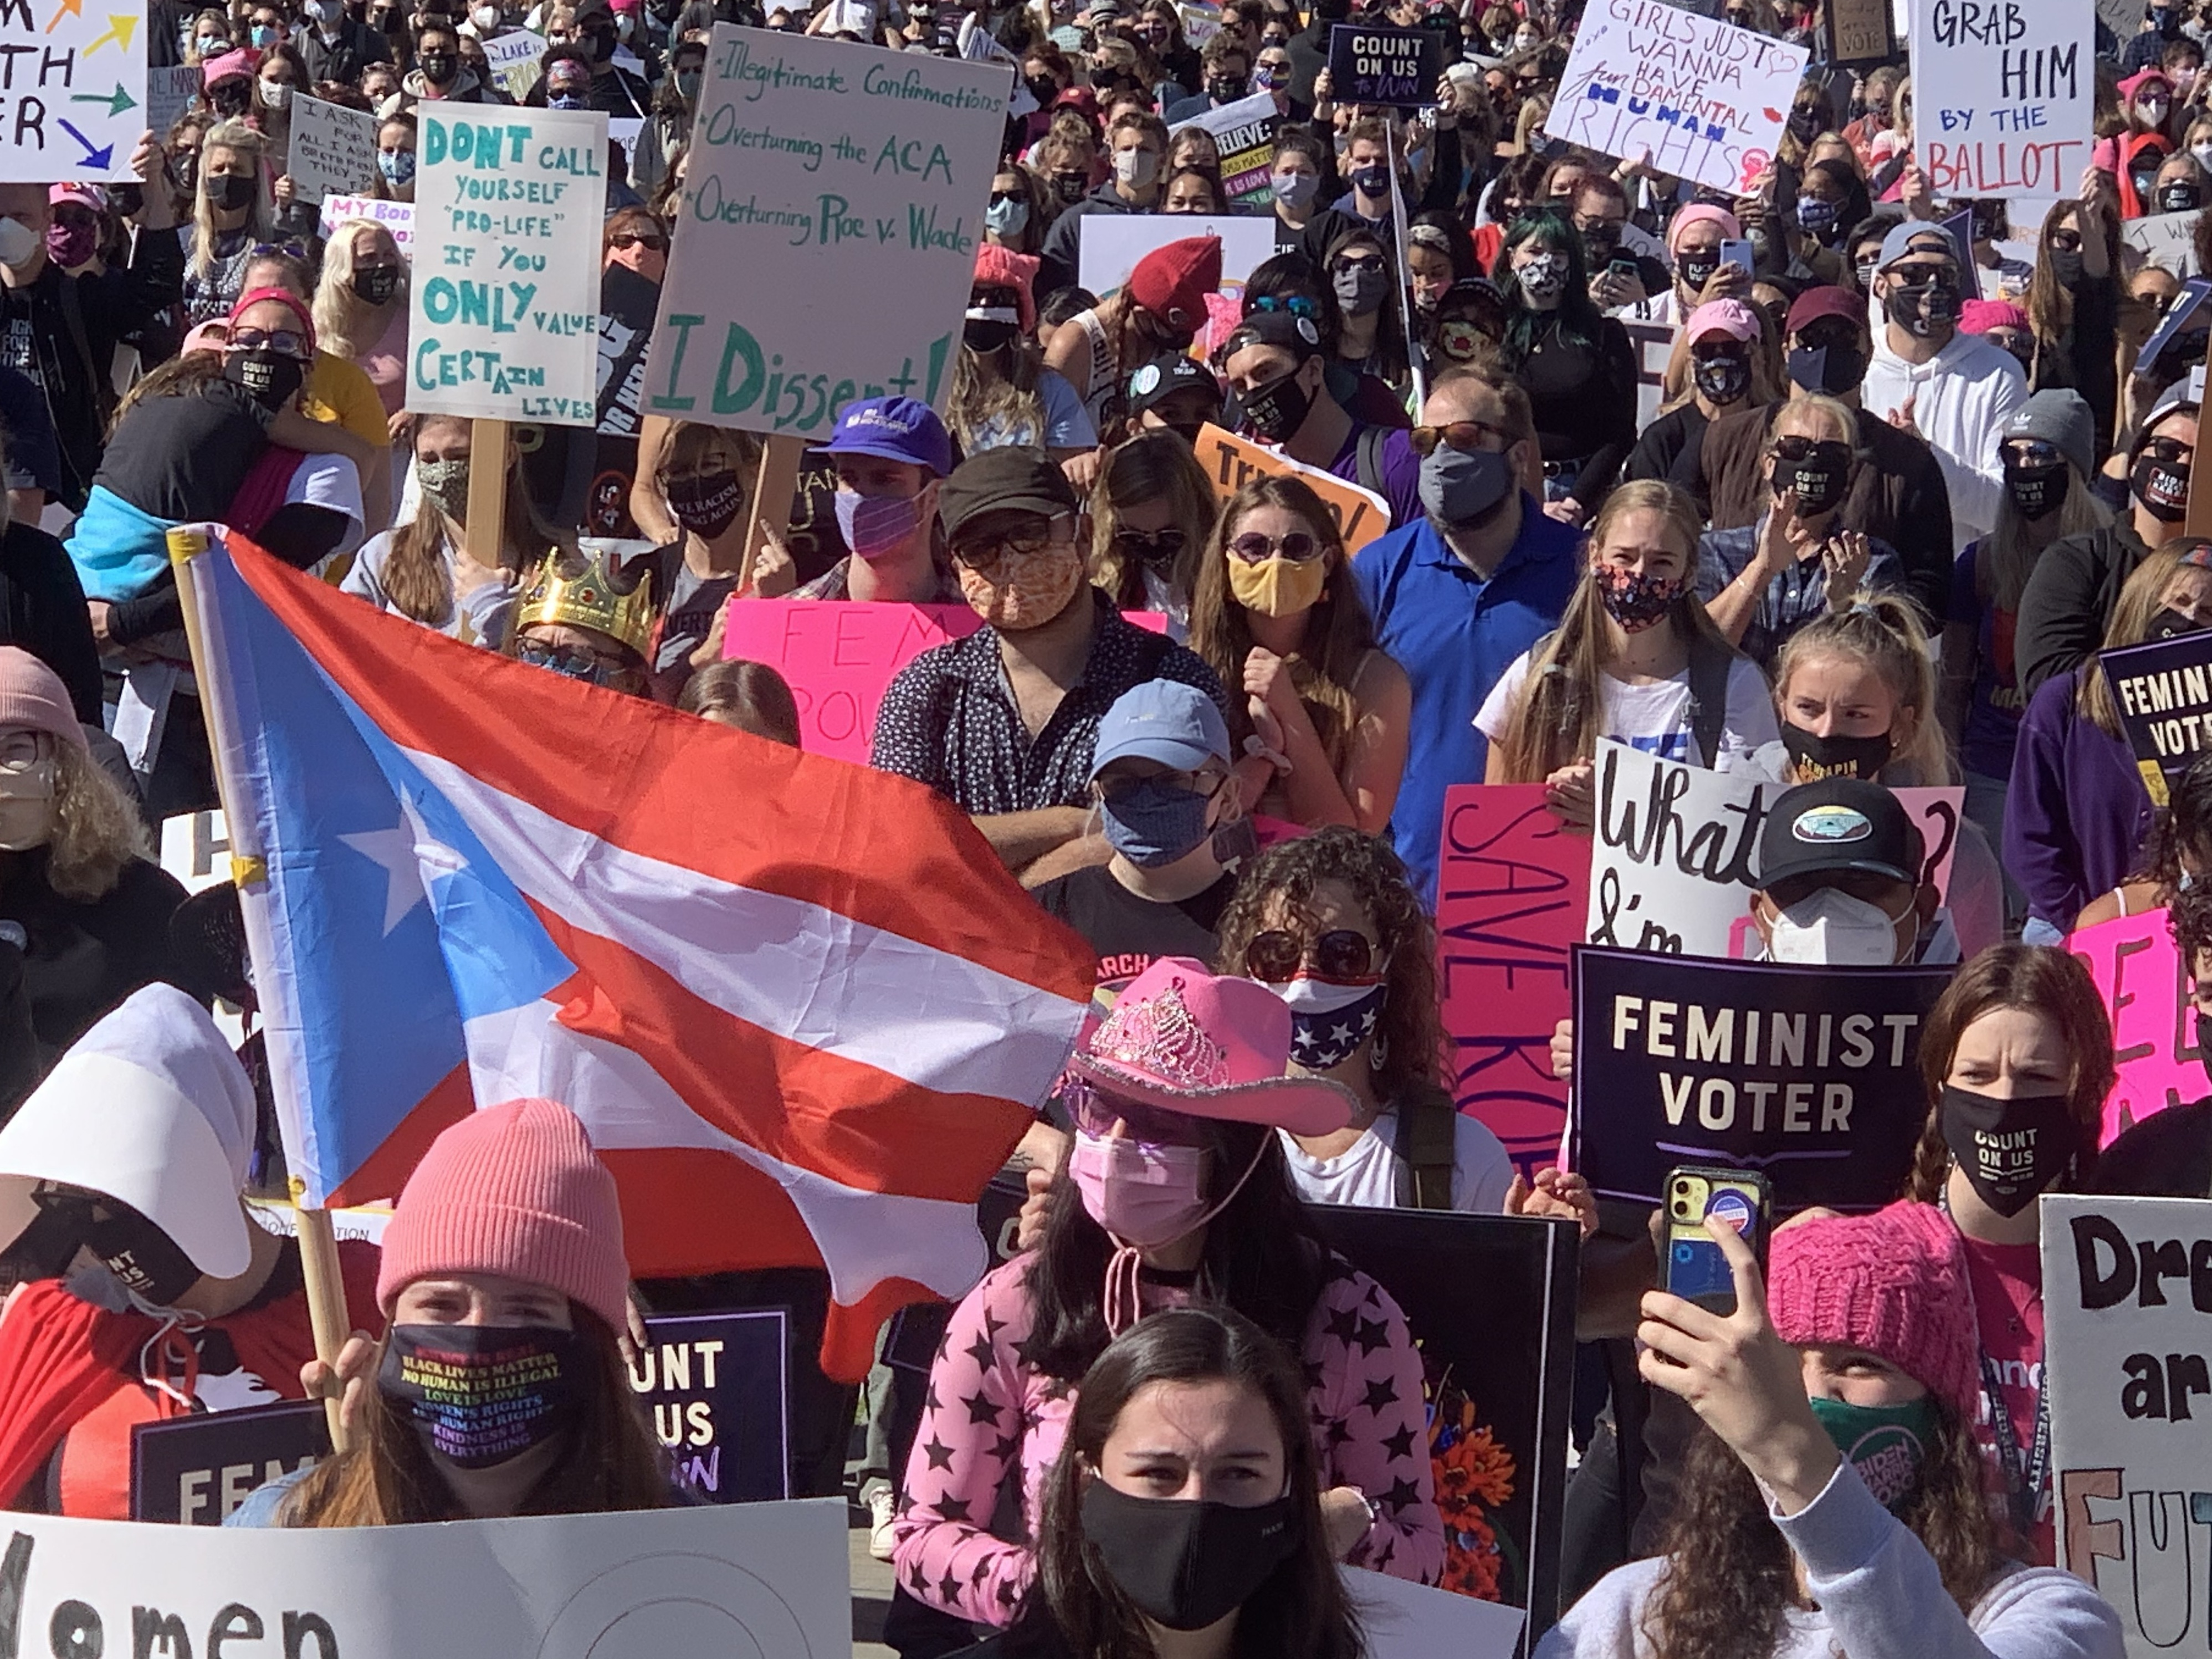 Women's Marches Being Held In Washington, D.C., Cities Nationwide